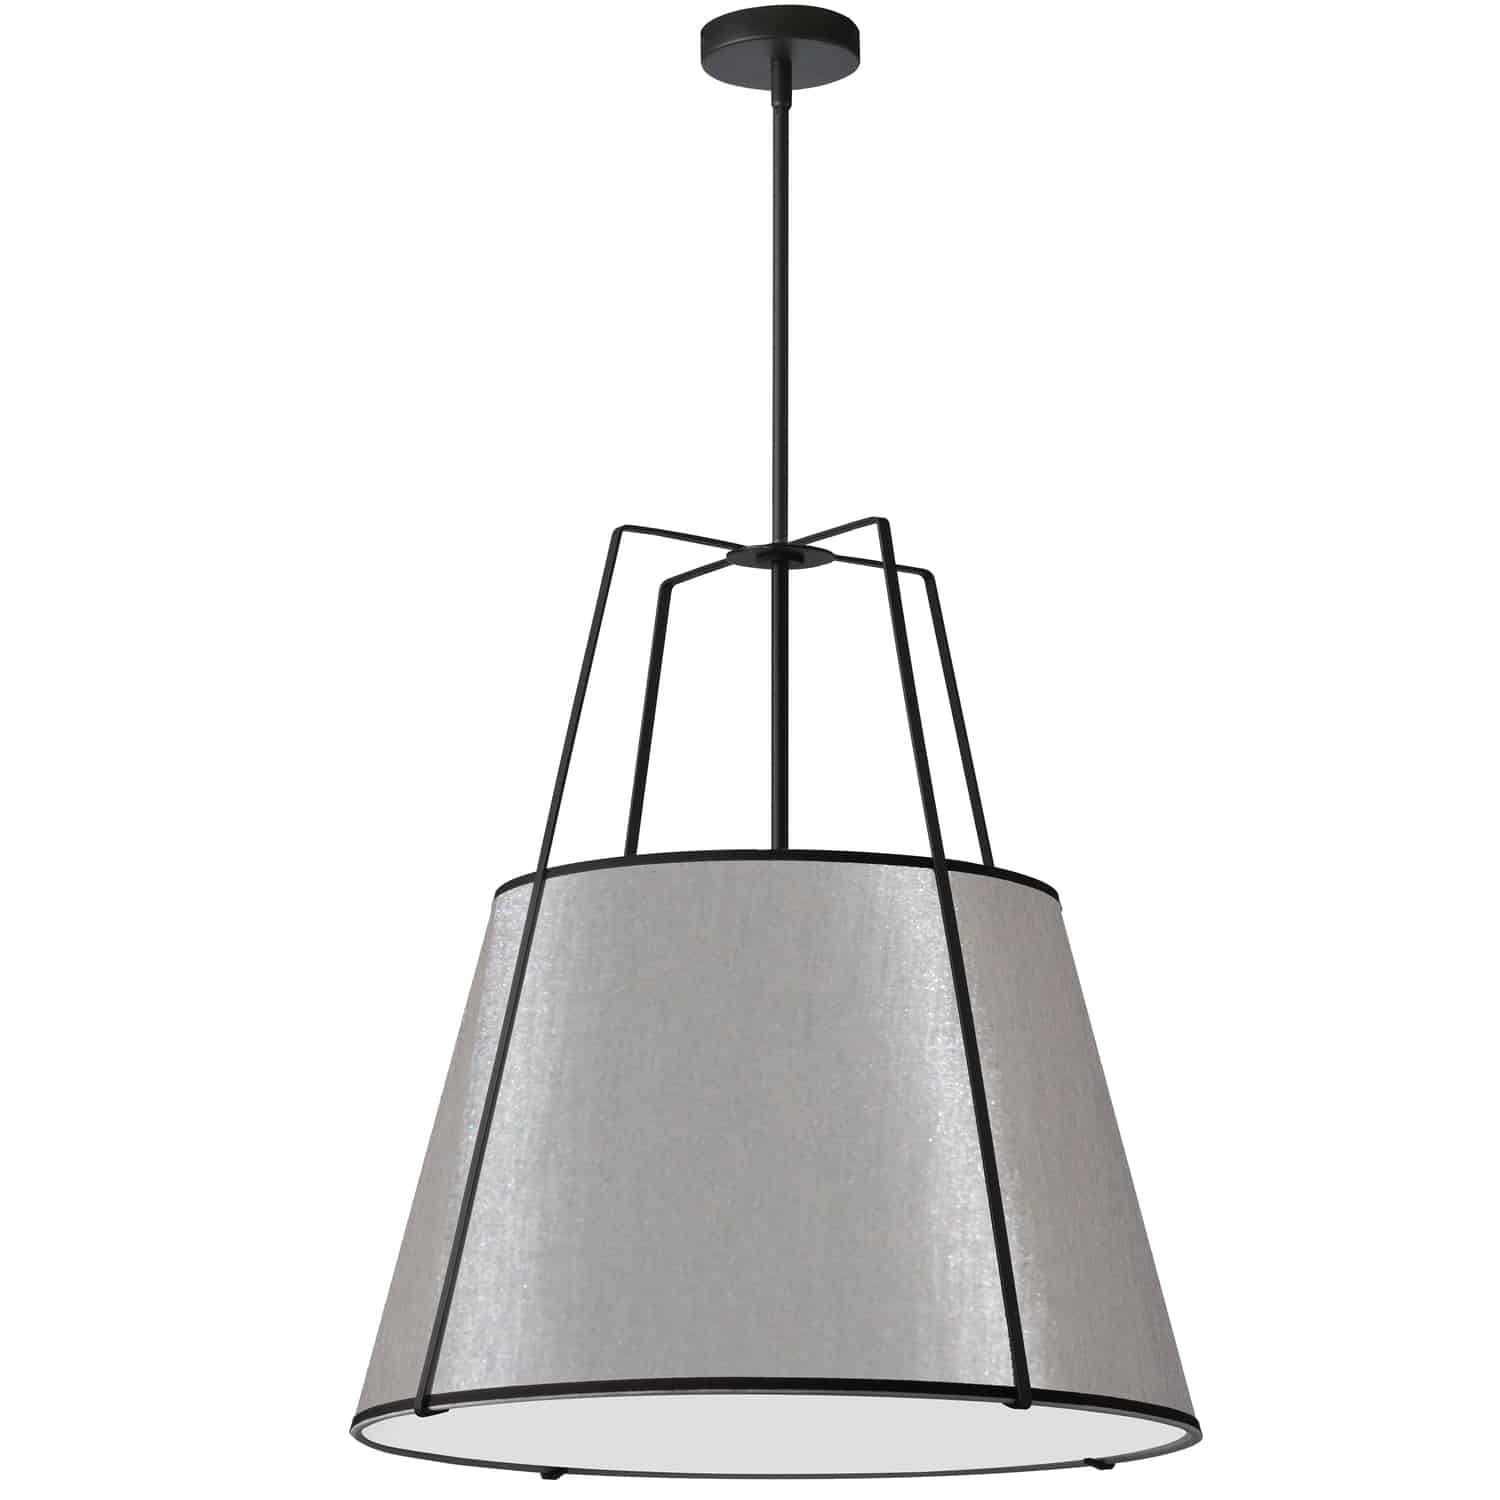 3 Light Trapezoid Pendant Black Grey Shade with 790 Diffuser